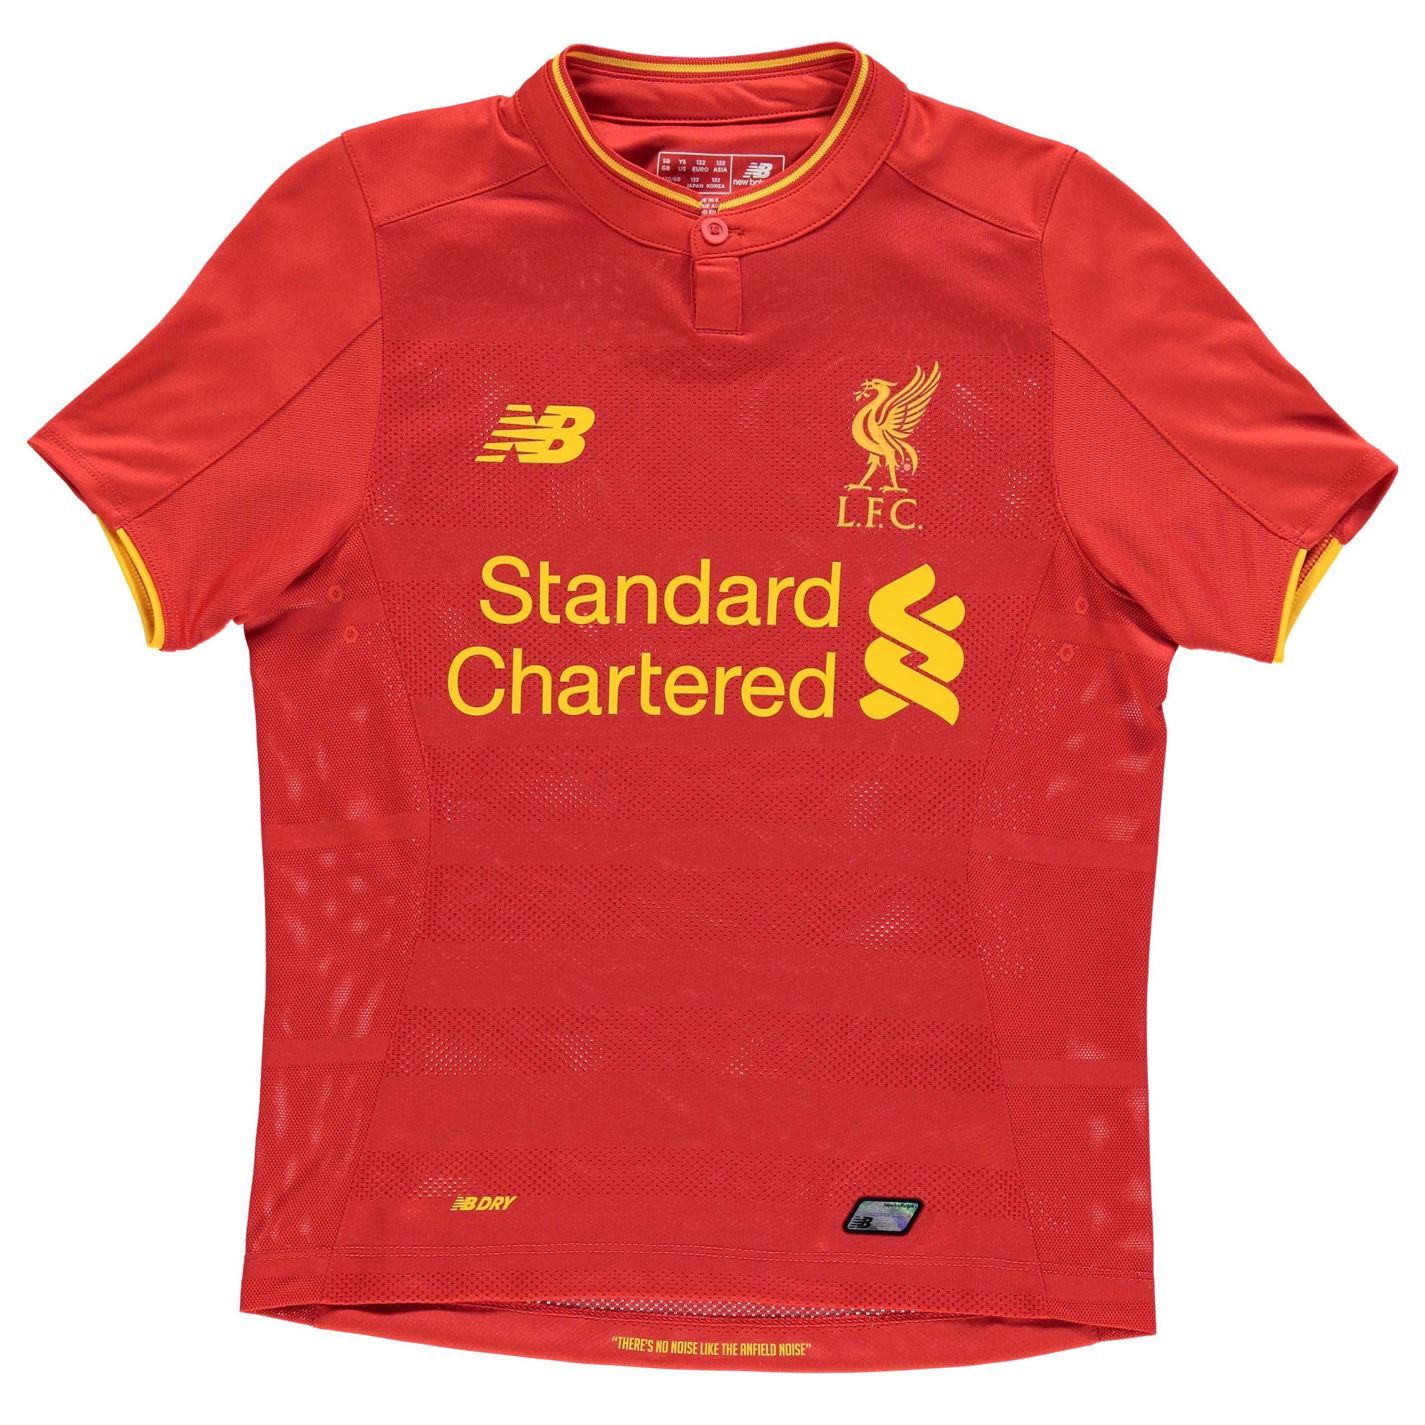 81ff73e36f7 ... New Balance Liverpool FC Home Jersey 2016 2017 Juniors Red Football  Soccer Shirt